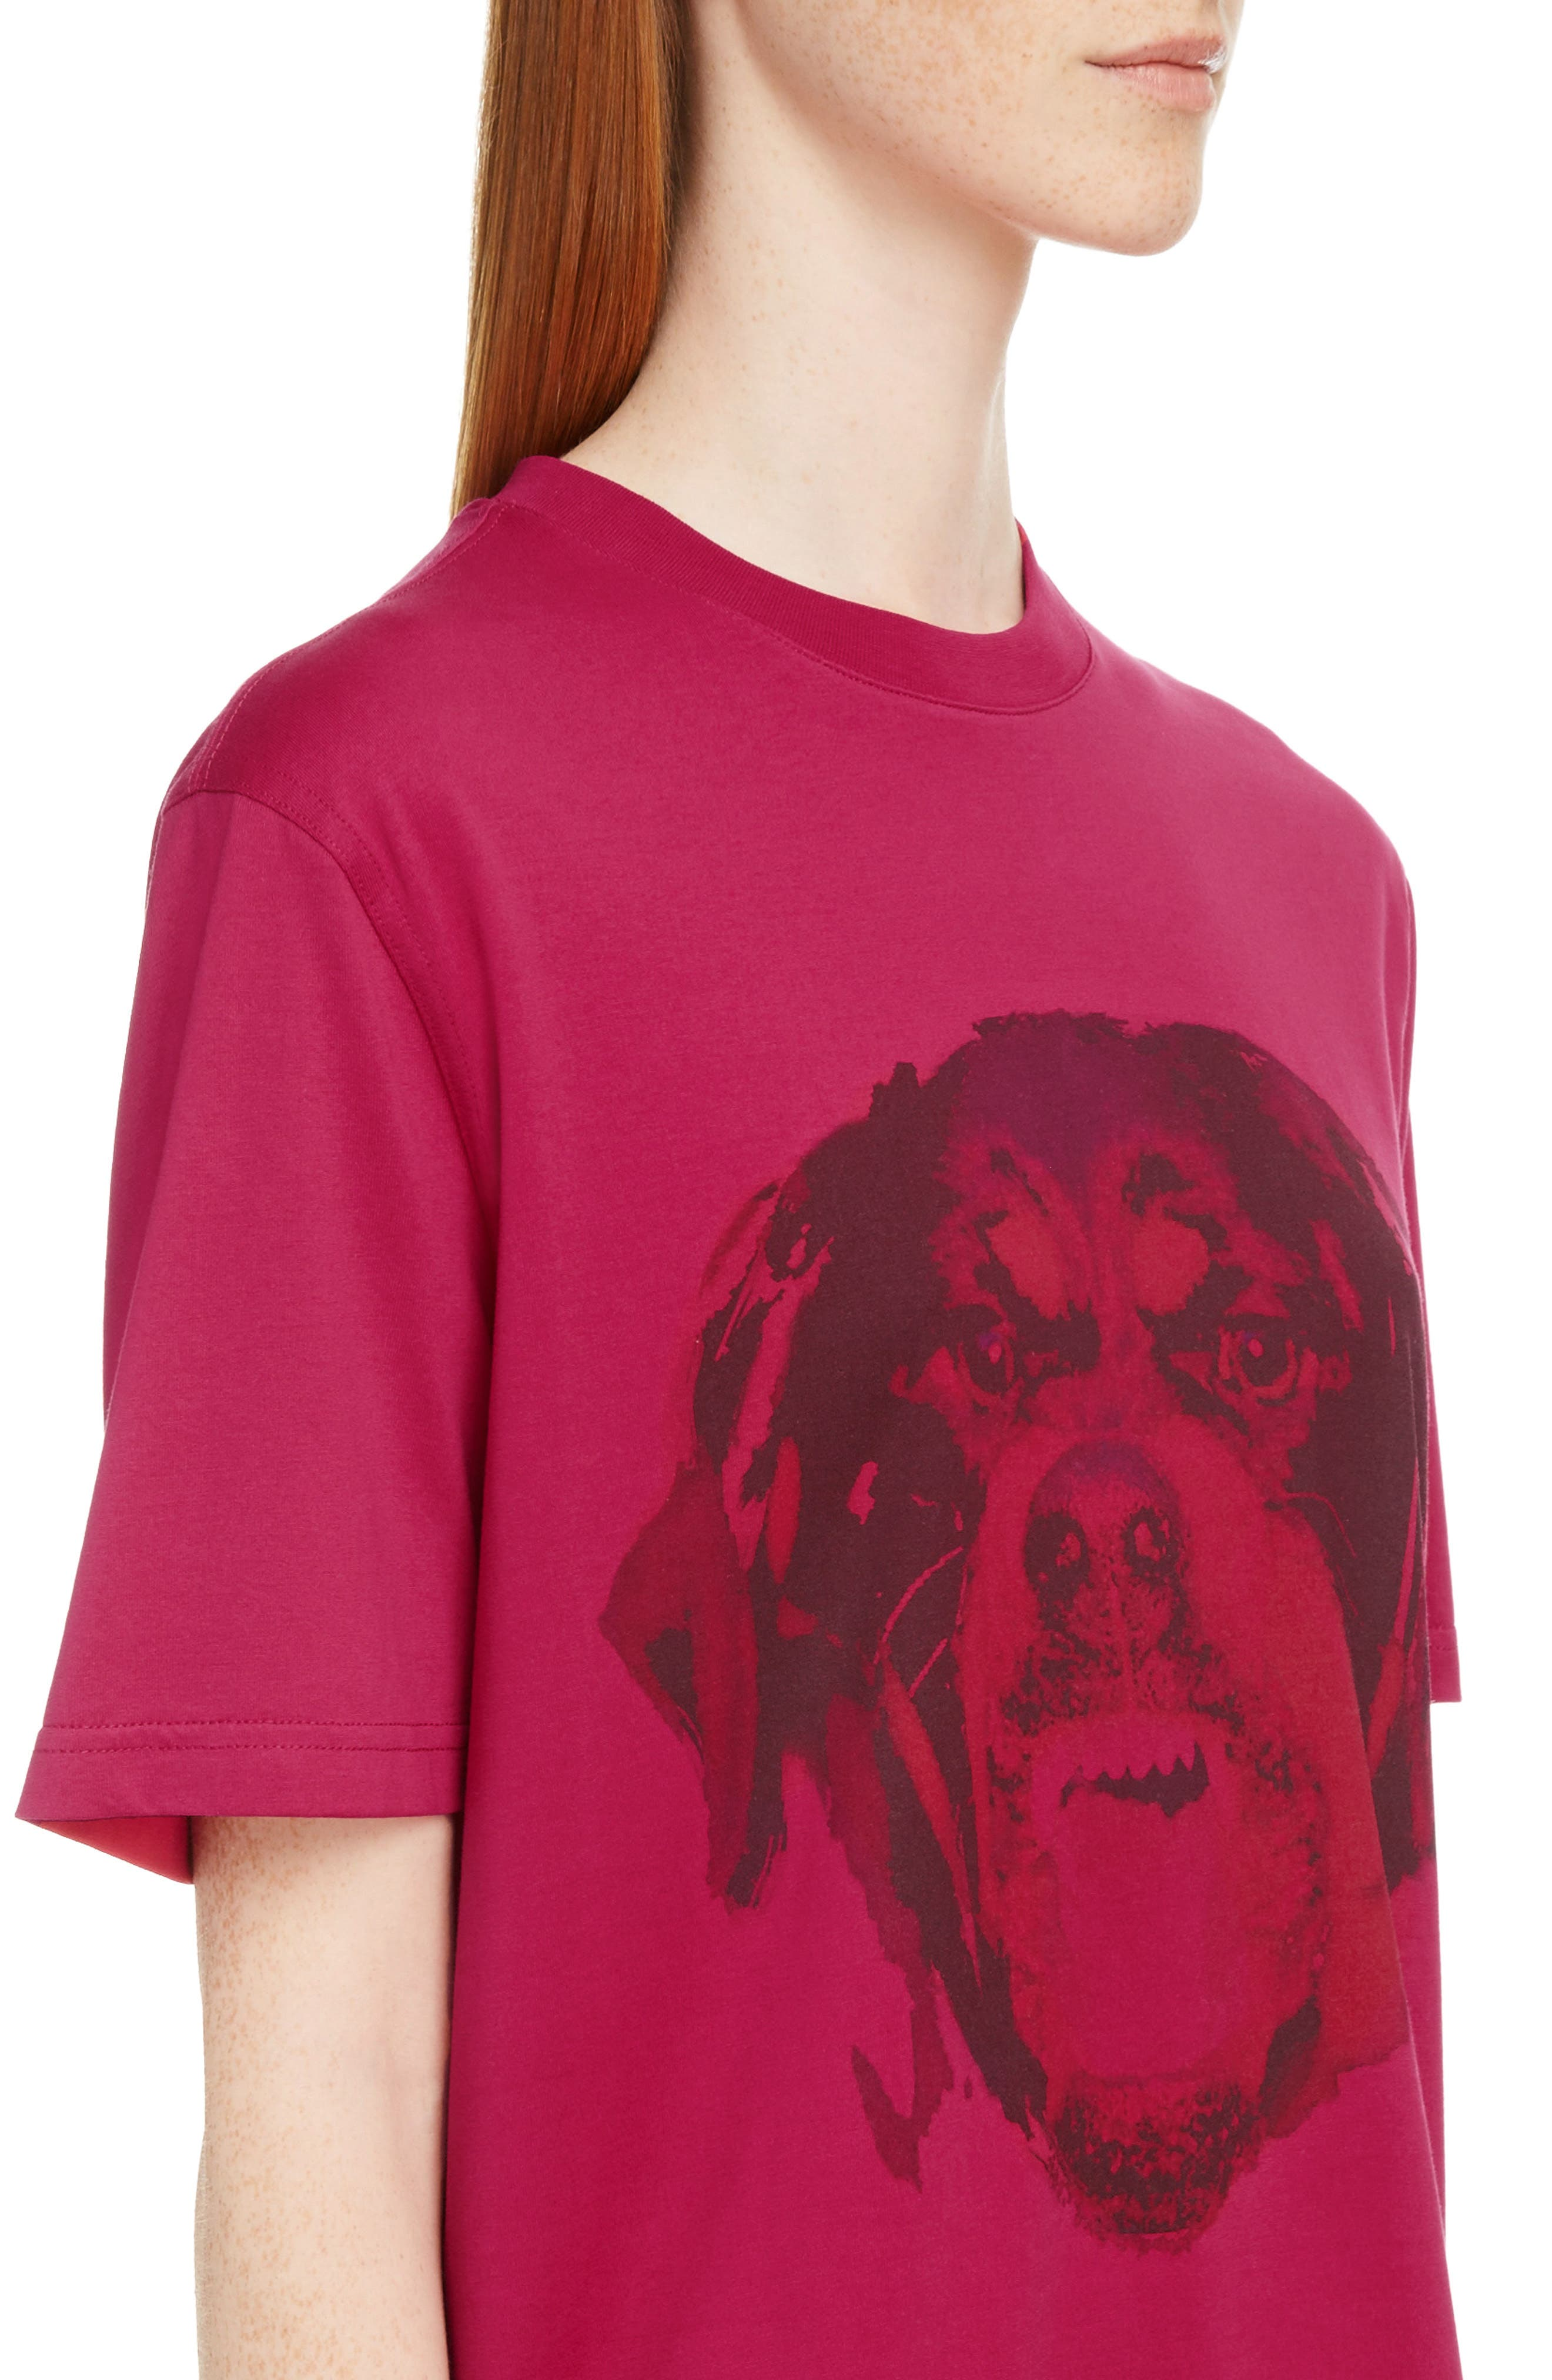 Rottweiler Print Tee,                             Alternate thumbnail 4, color,                             675